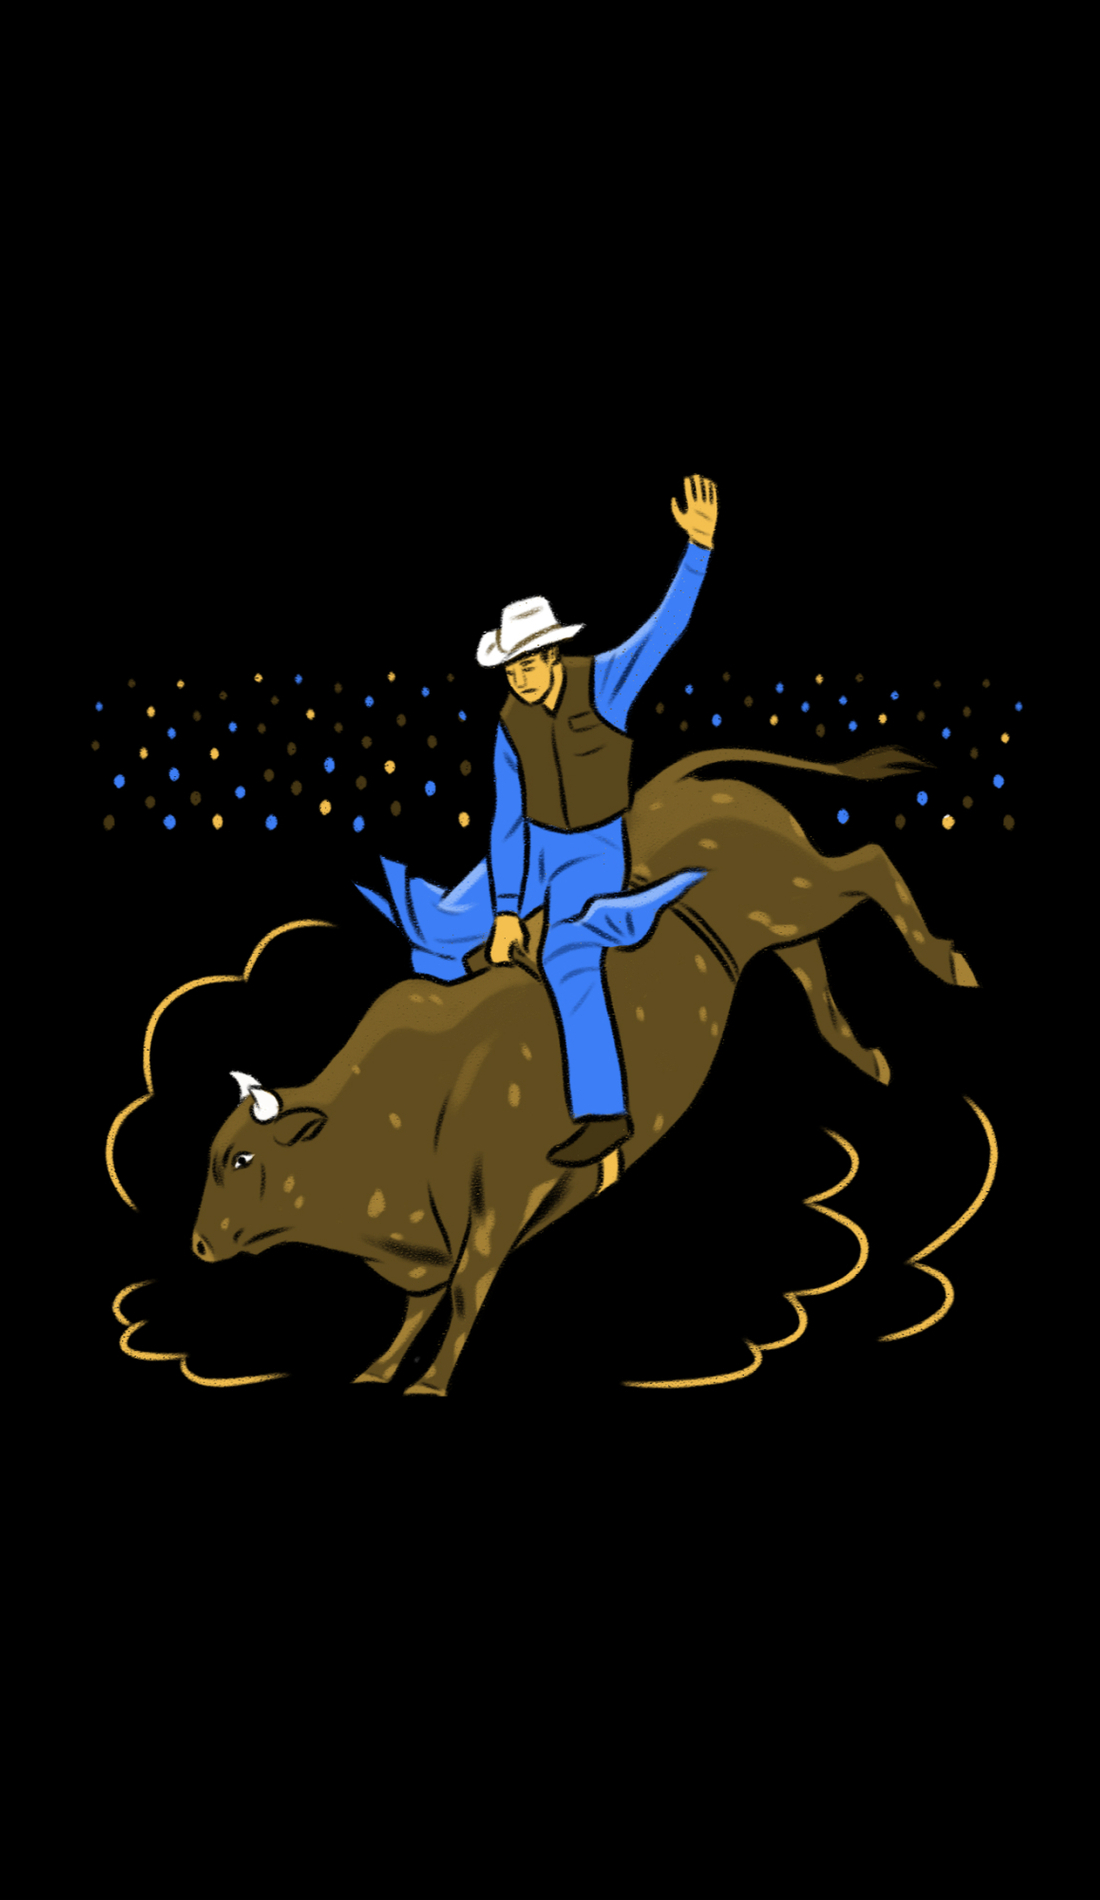 A Cheyenne Frontier Days Rodeo live event